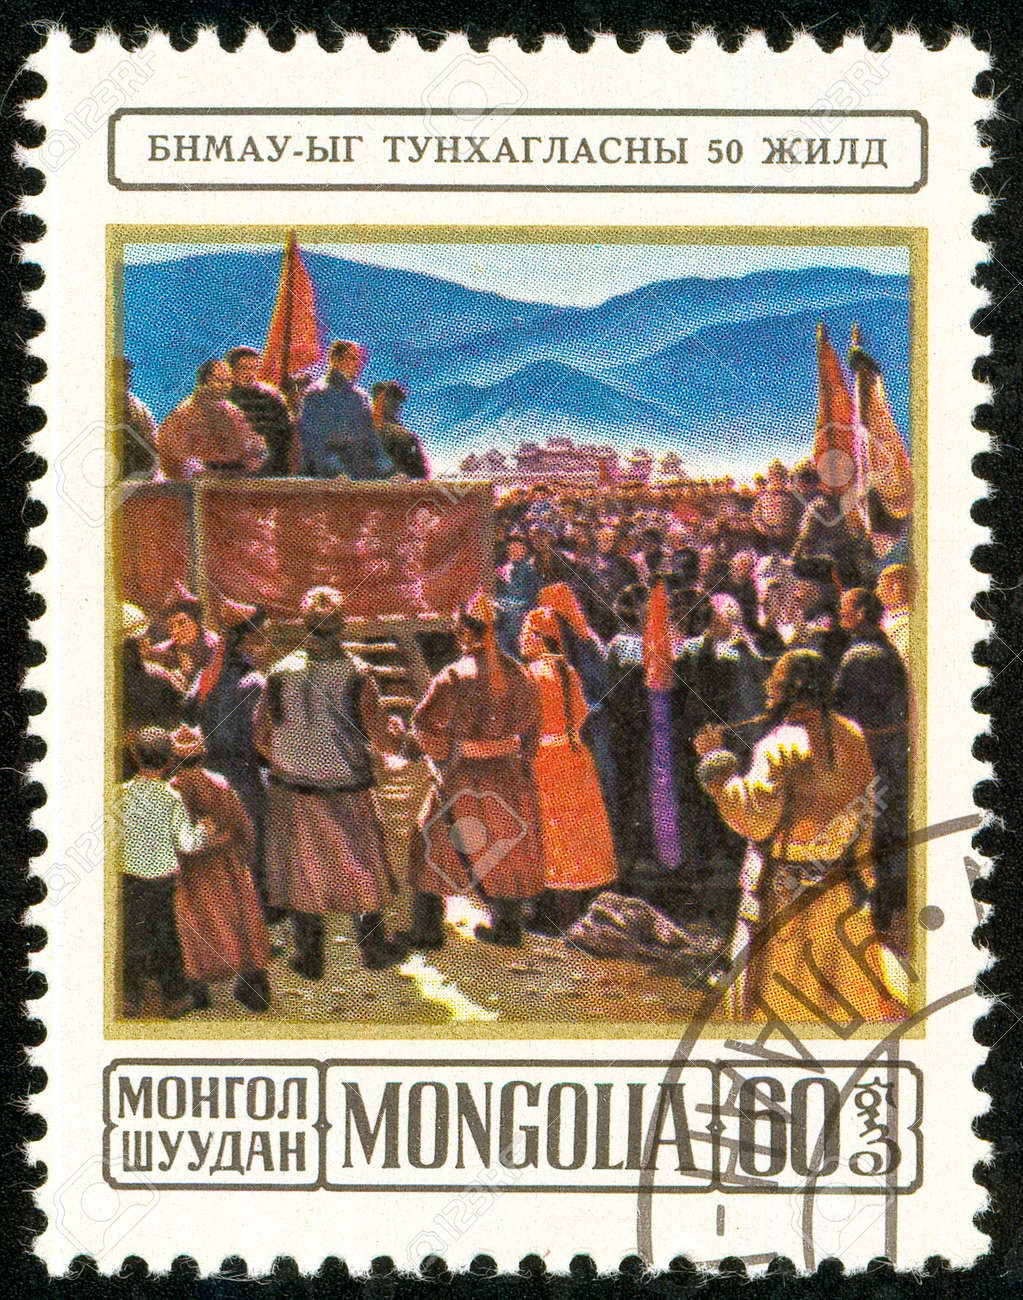 Ukraine - circa 2018: A postage stamp printed in Mongolia show Rally in Urga. Series: 50 years People's Republic of Mongolia. Circa 1974. Banque d'images - 94168048